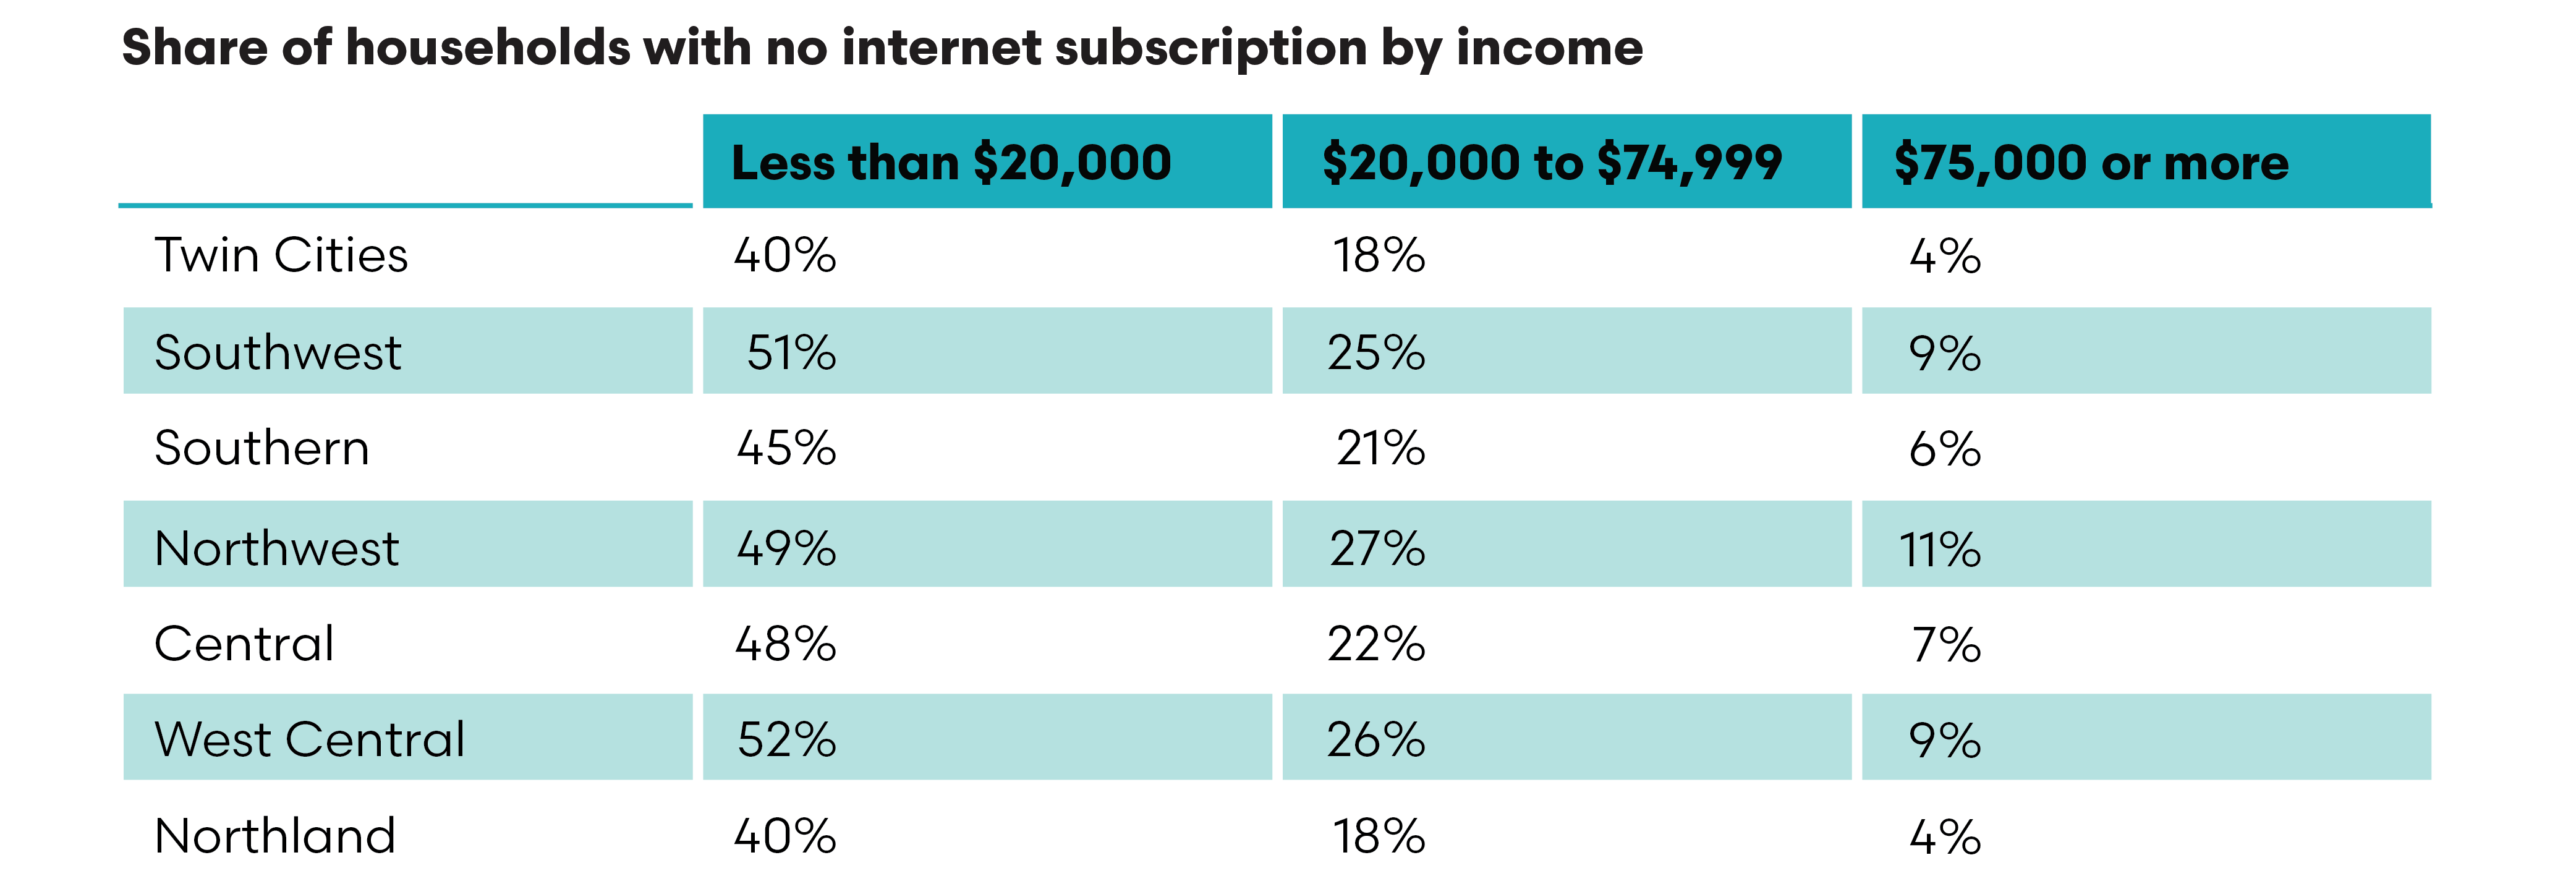 Table showing share of households with no internet subscription by income